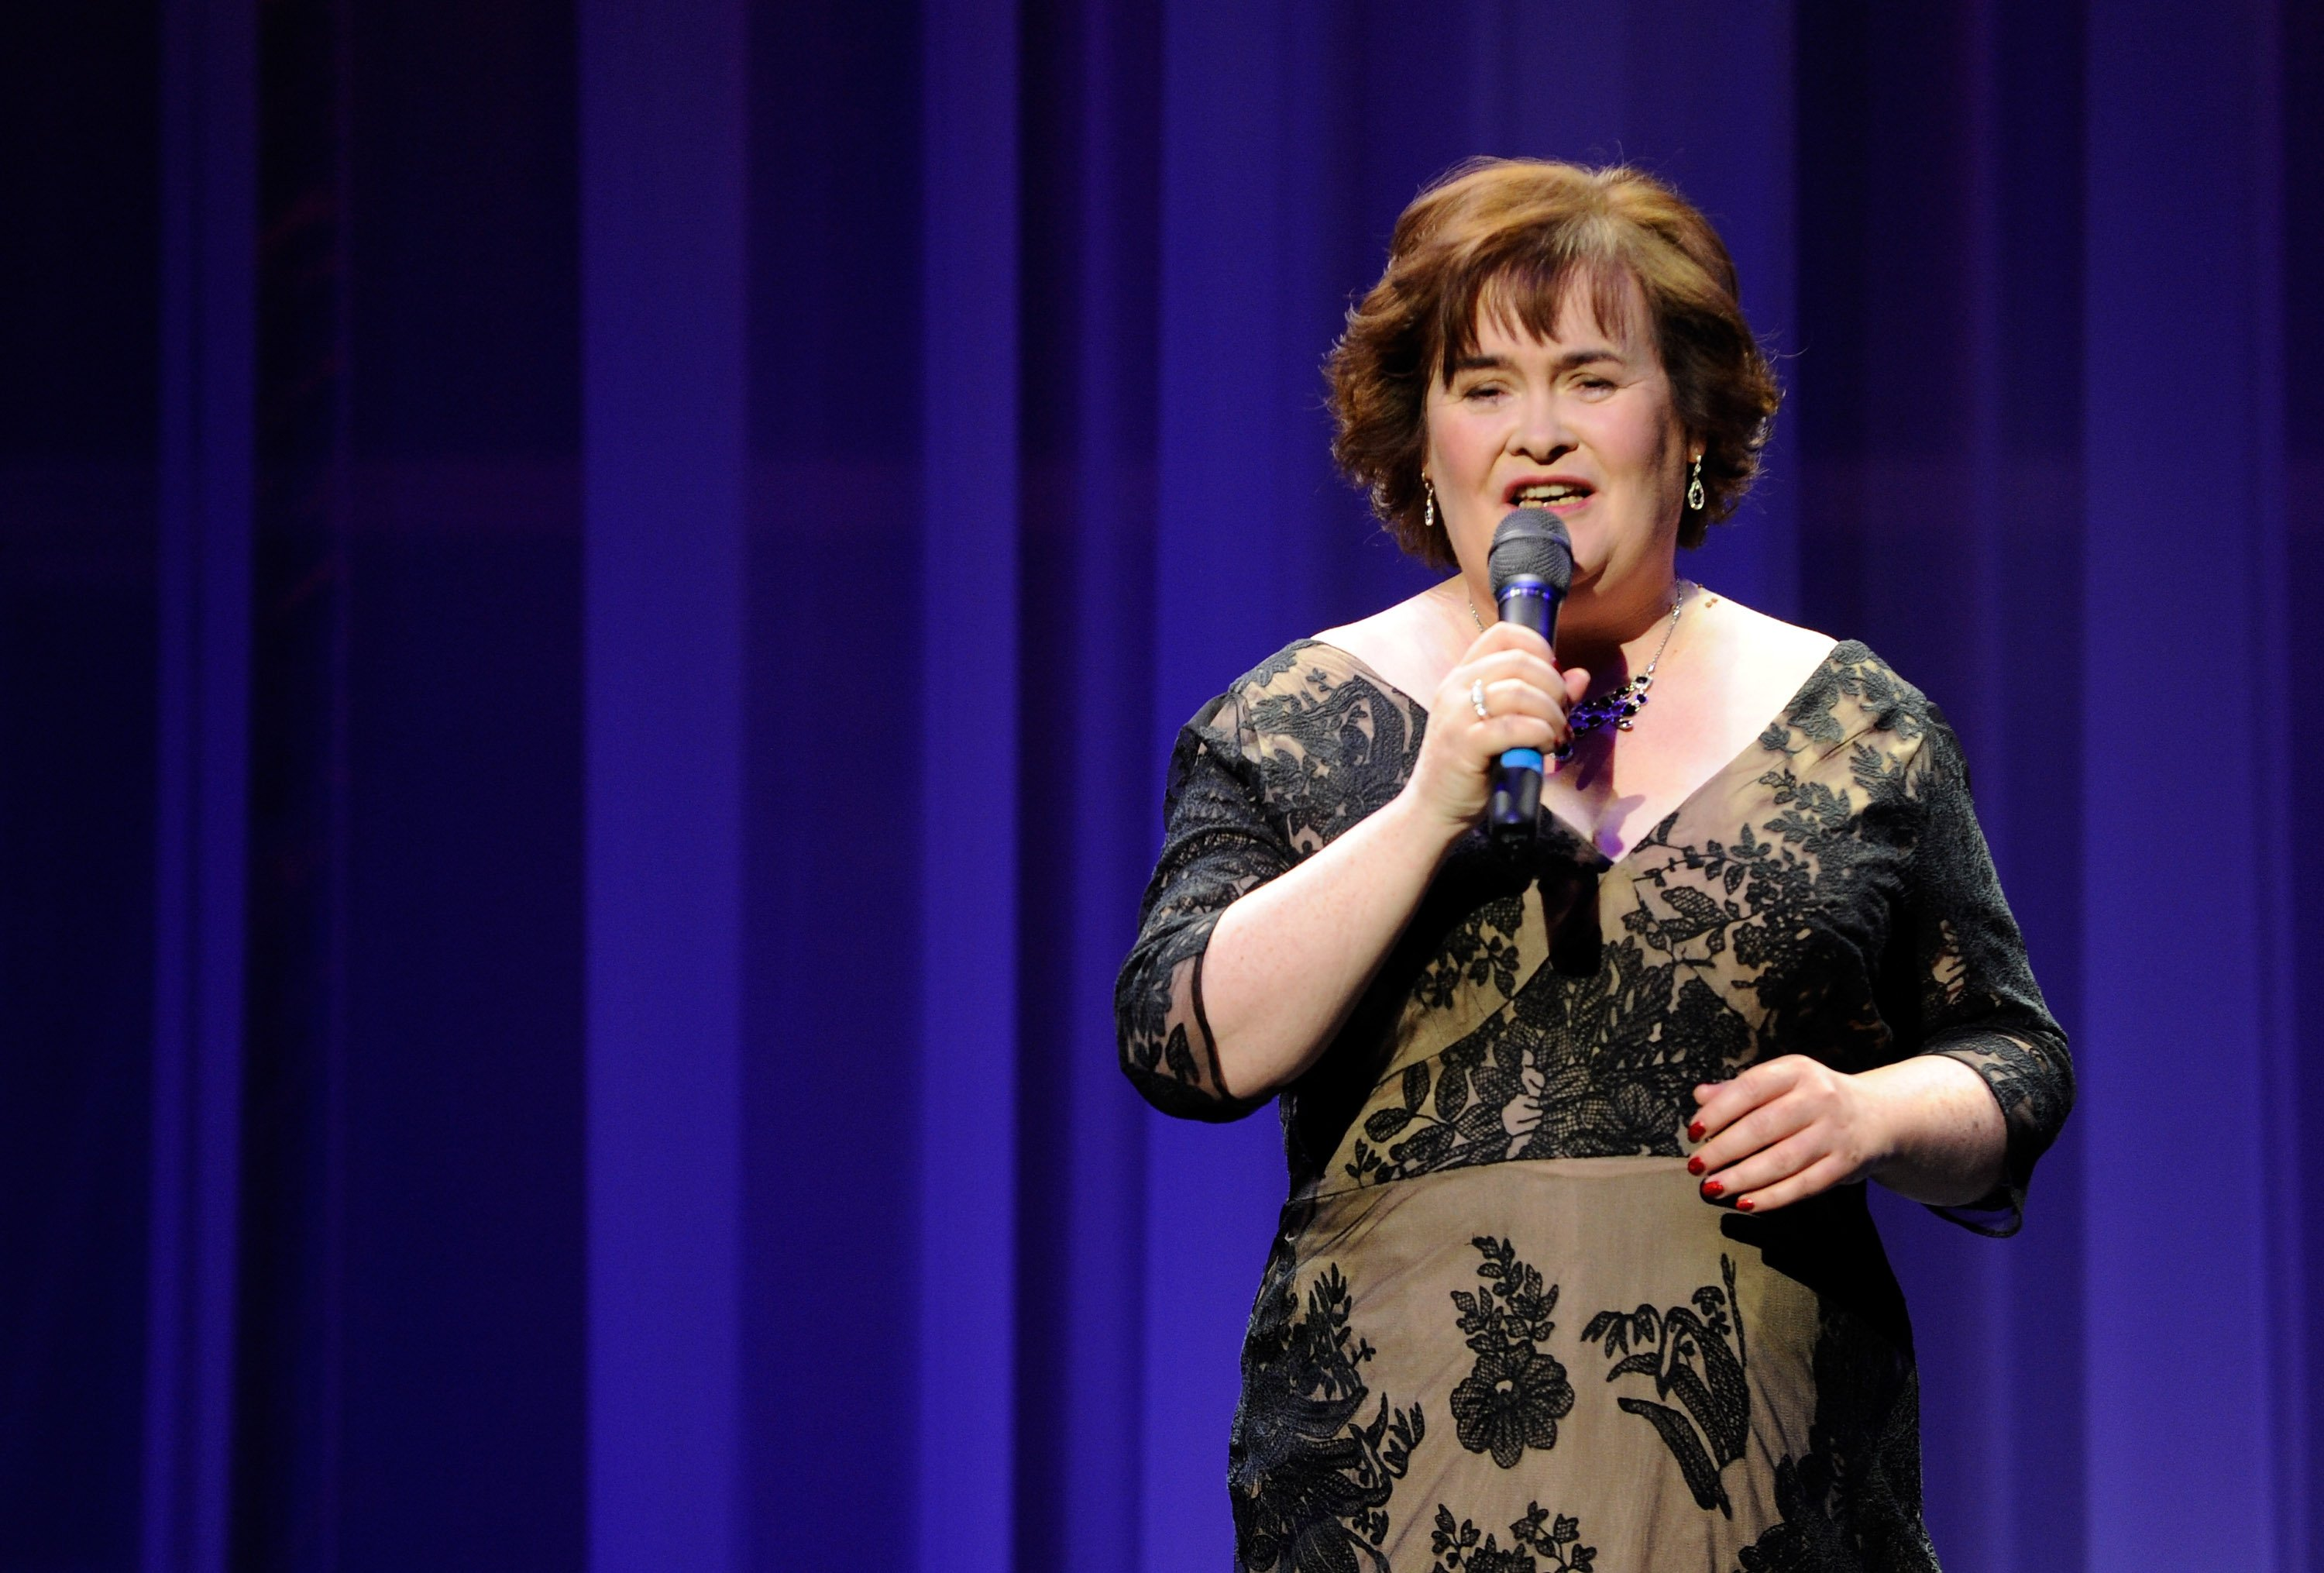 Susan Boyle performs during the Donny & Marie variety show at the Flamingo Las Vegas October 17, 2012. | Photo: GettyImages